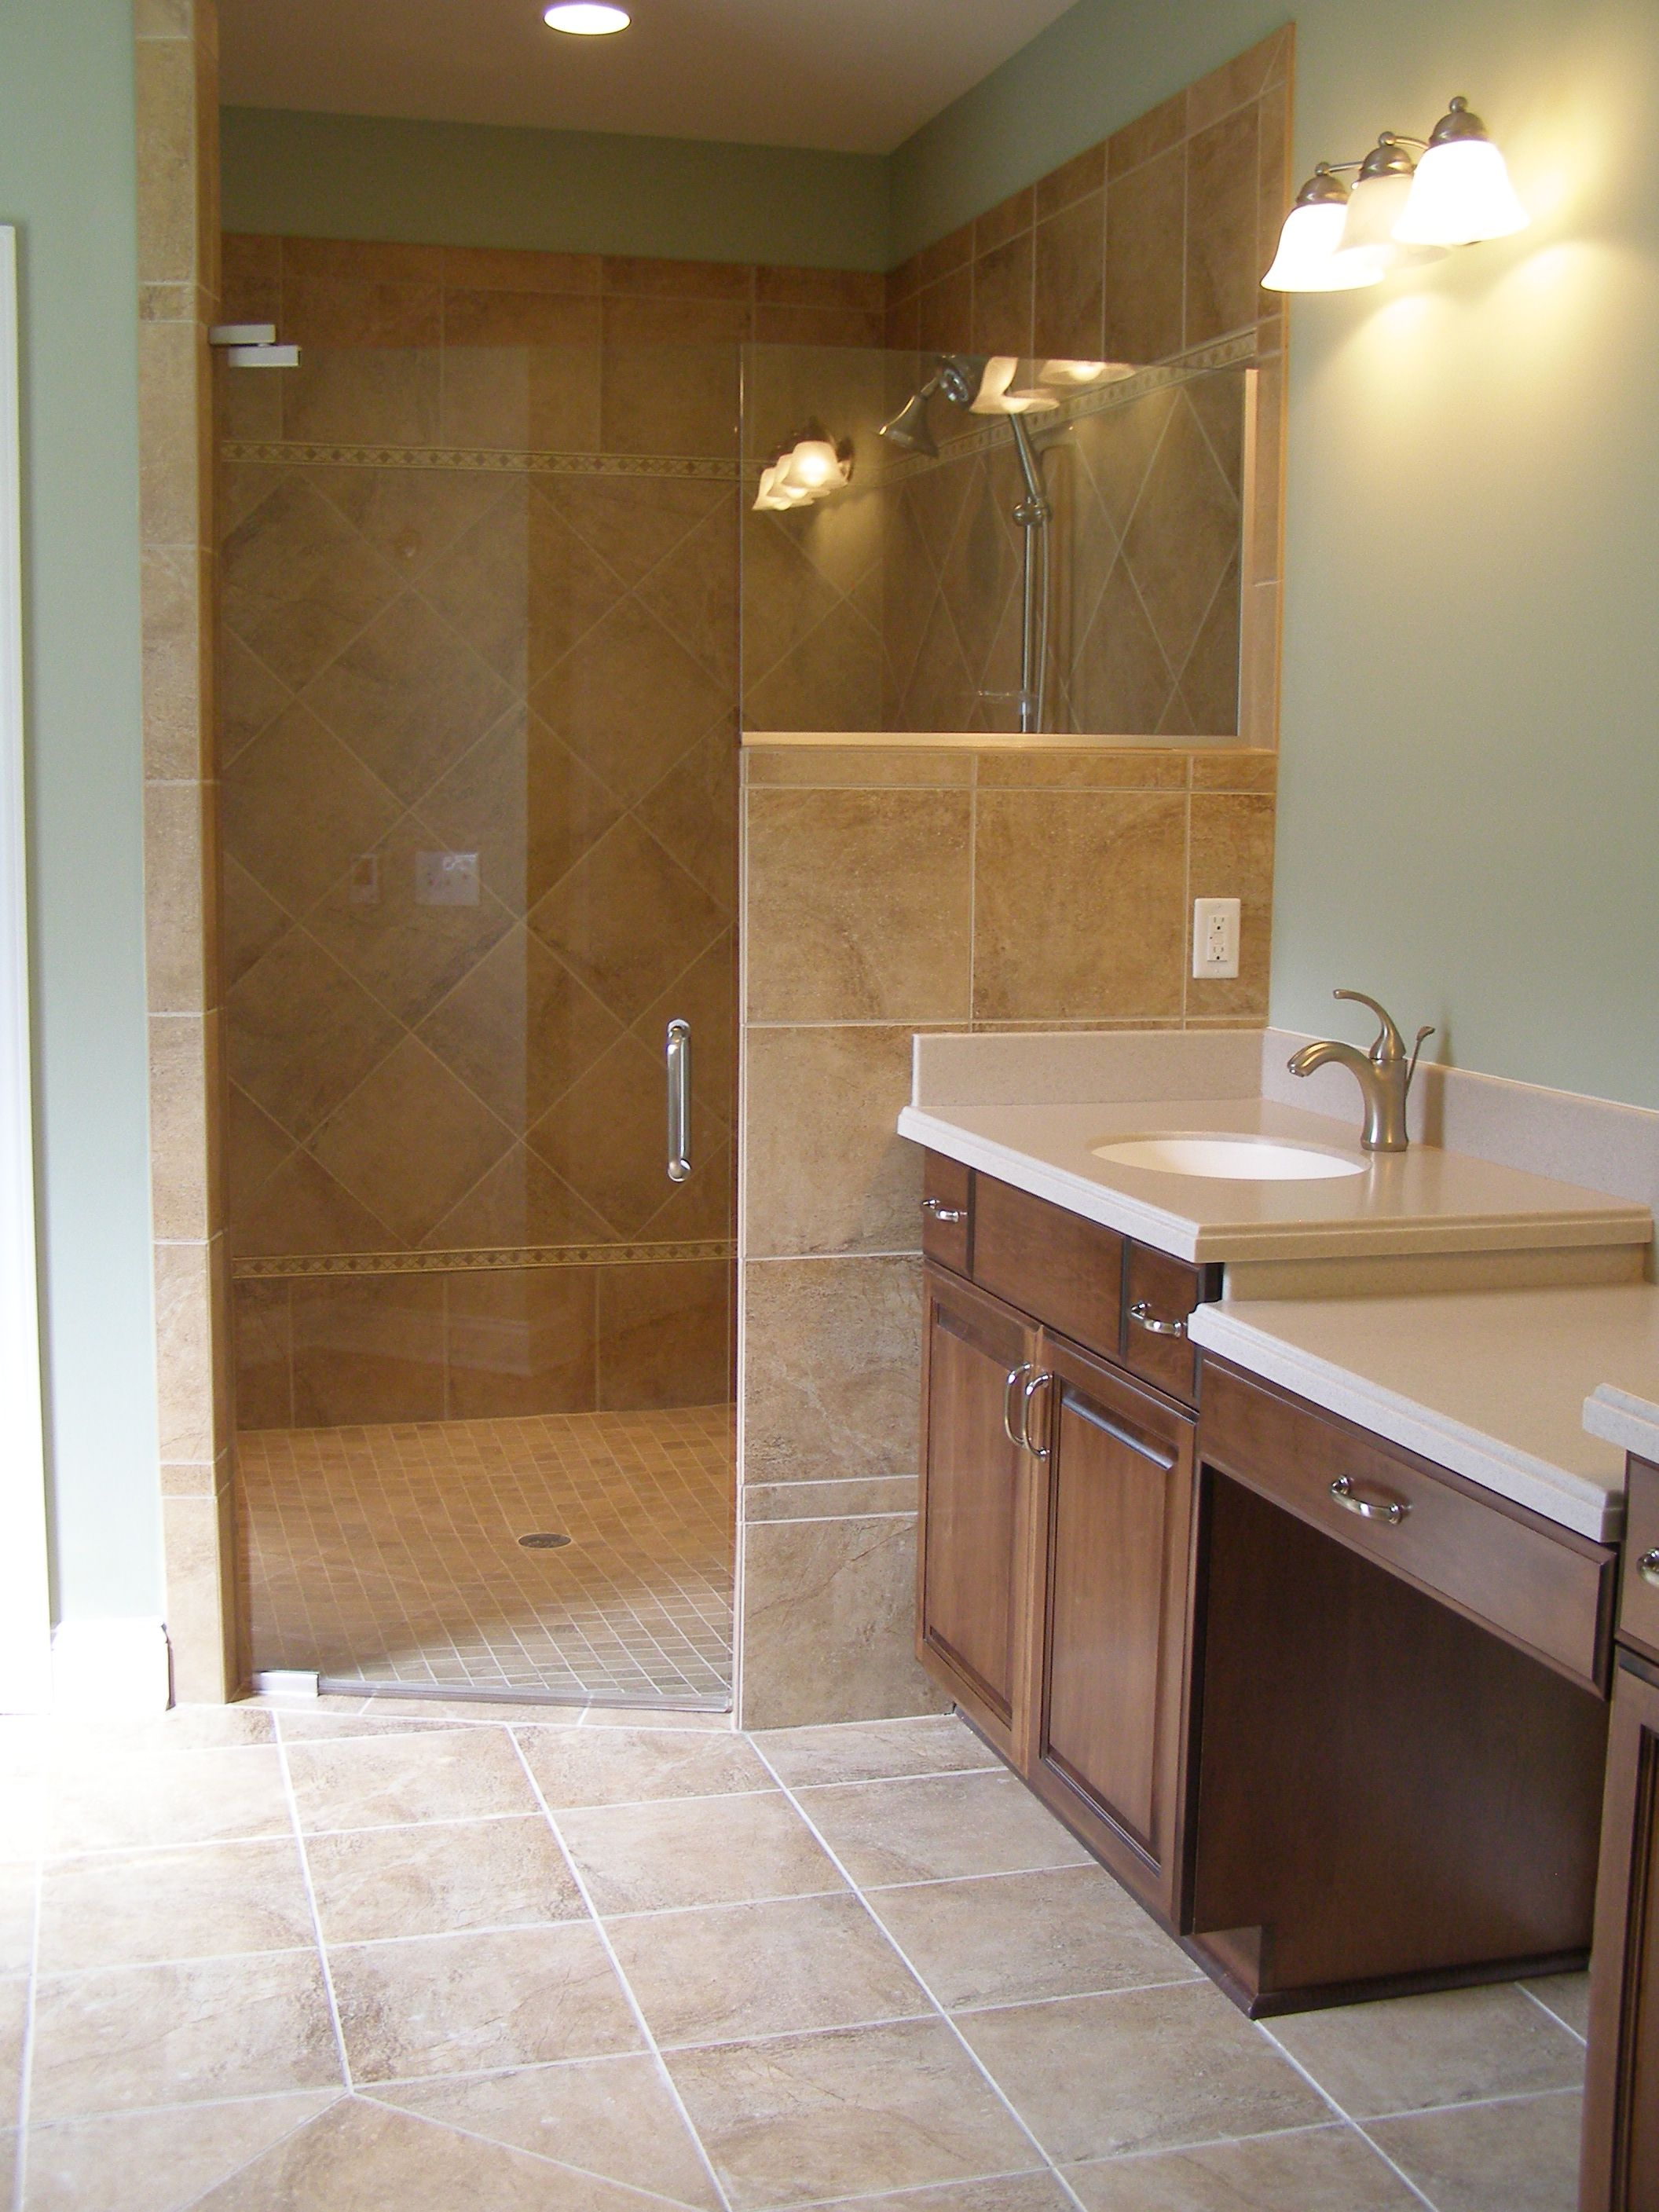 Walk In Shower Doors Corner Walk In Tile Shower With Frameless Shower Door For The Home